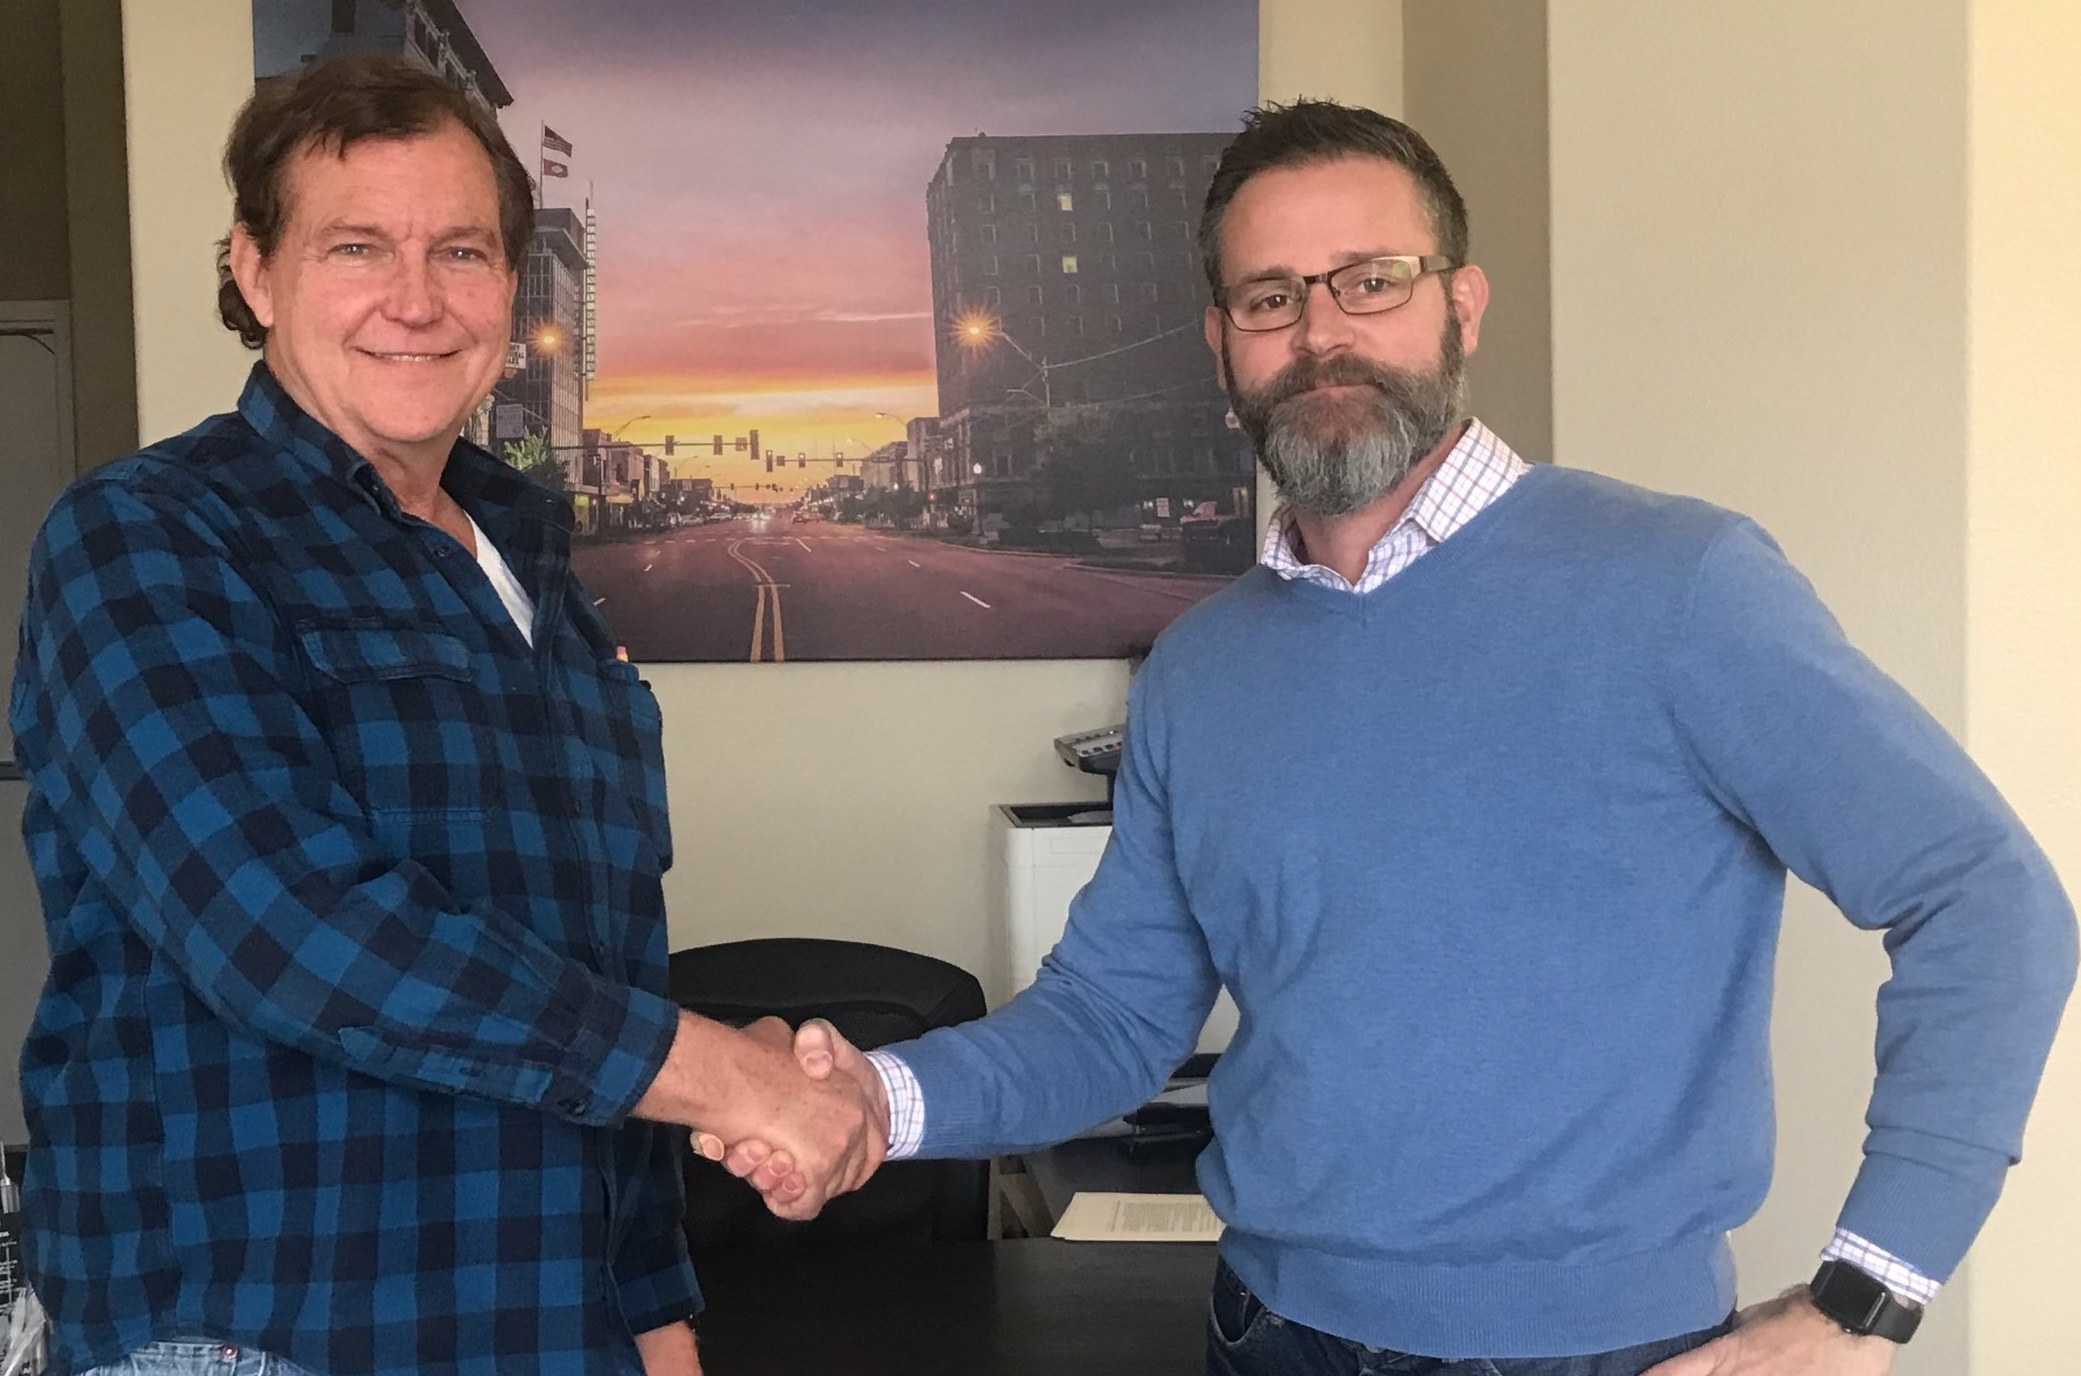 New owner Rick Ralston (R) shakes hands with seller Ed Boyd.